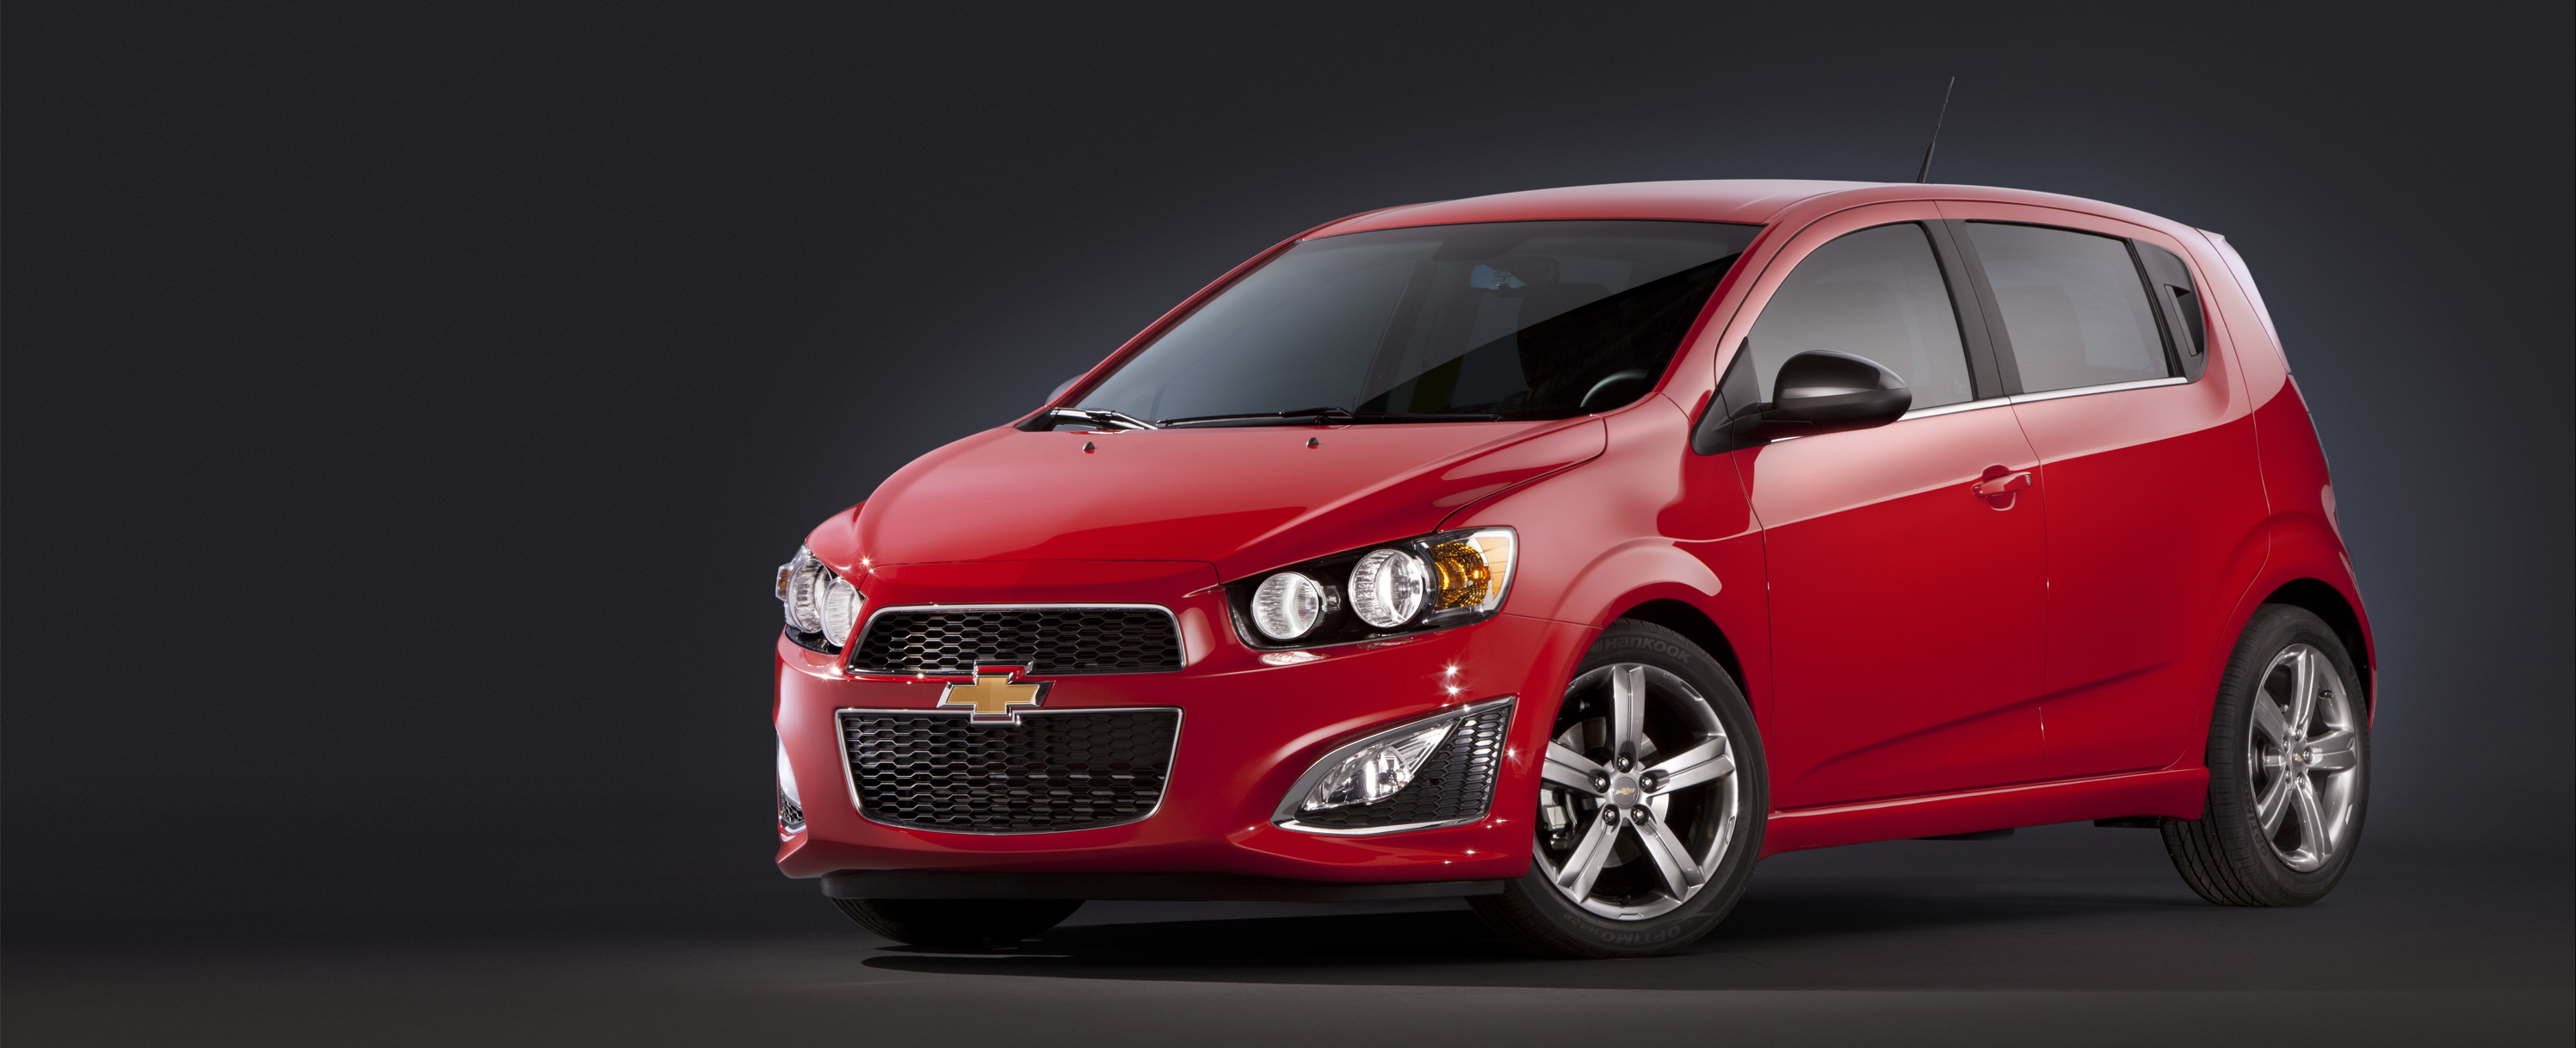 Chevrolet Sonic and Ford Fiesta Winning High Resolution Wallpaper Free